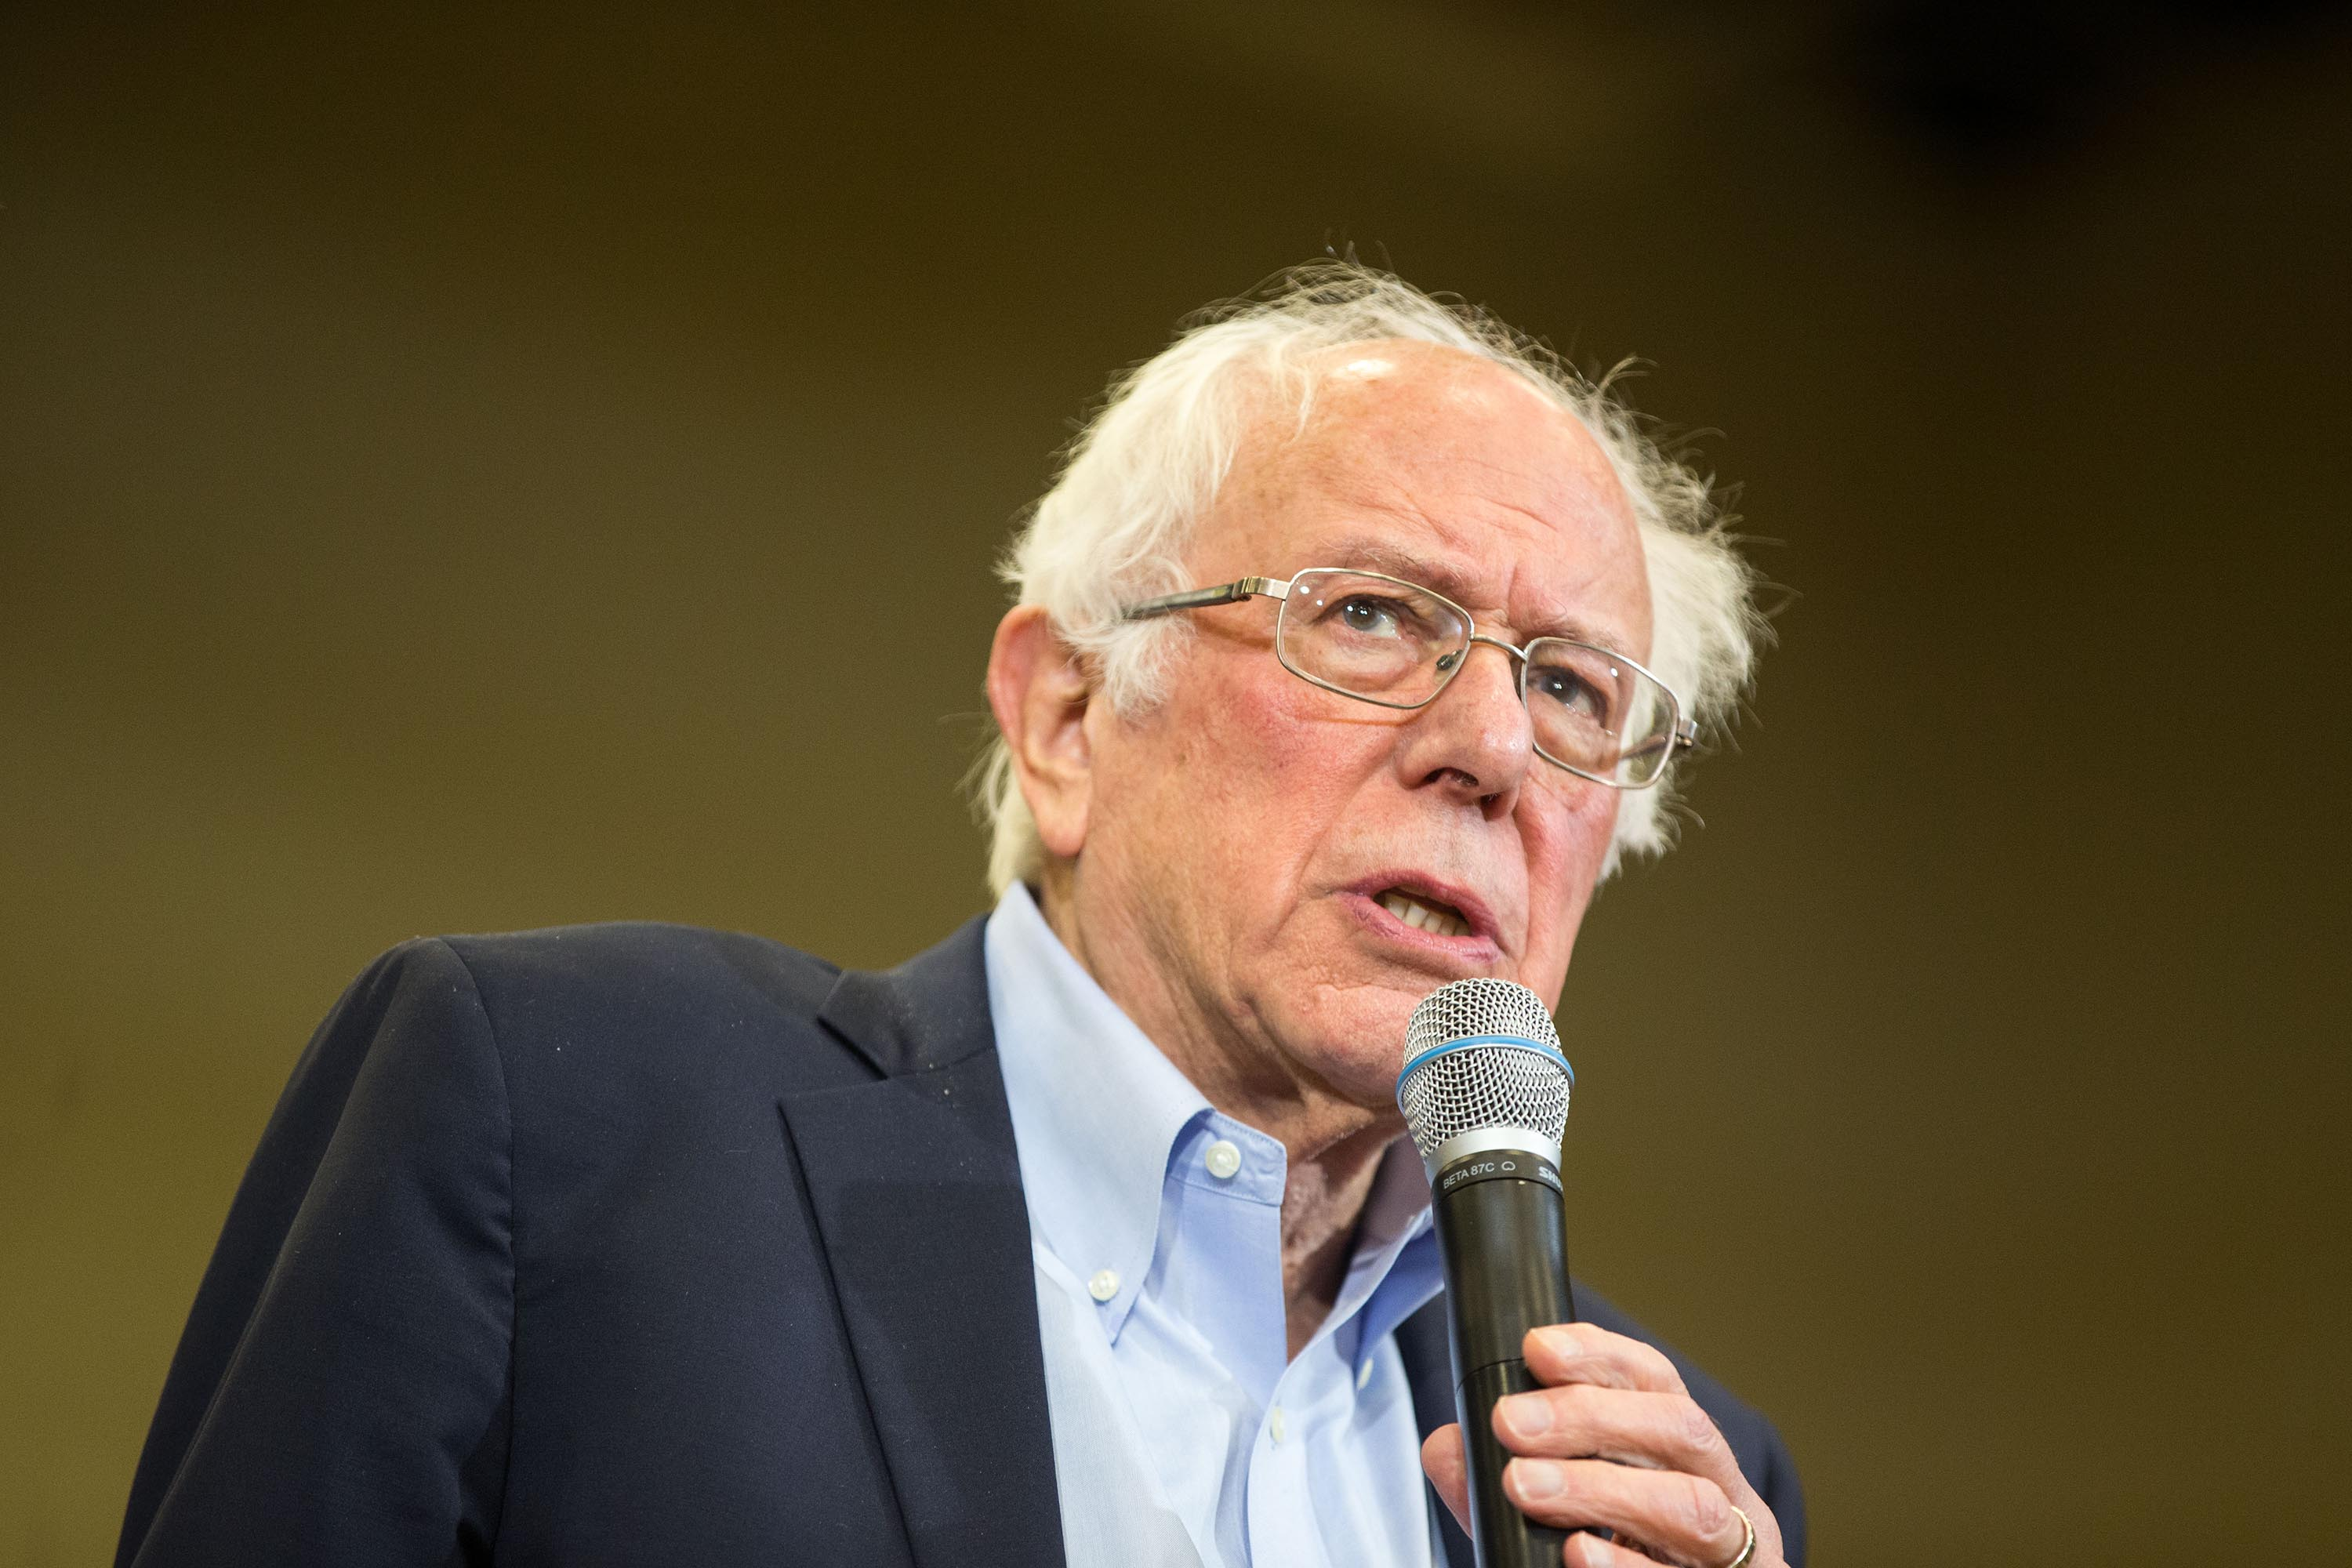 Poll: Bernie Sanders rises and leads in New Hampshire